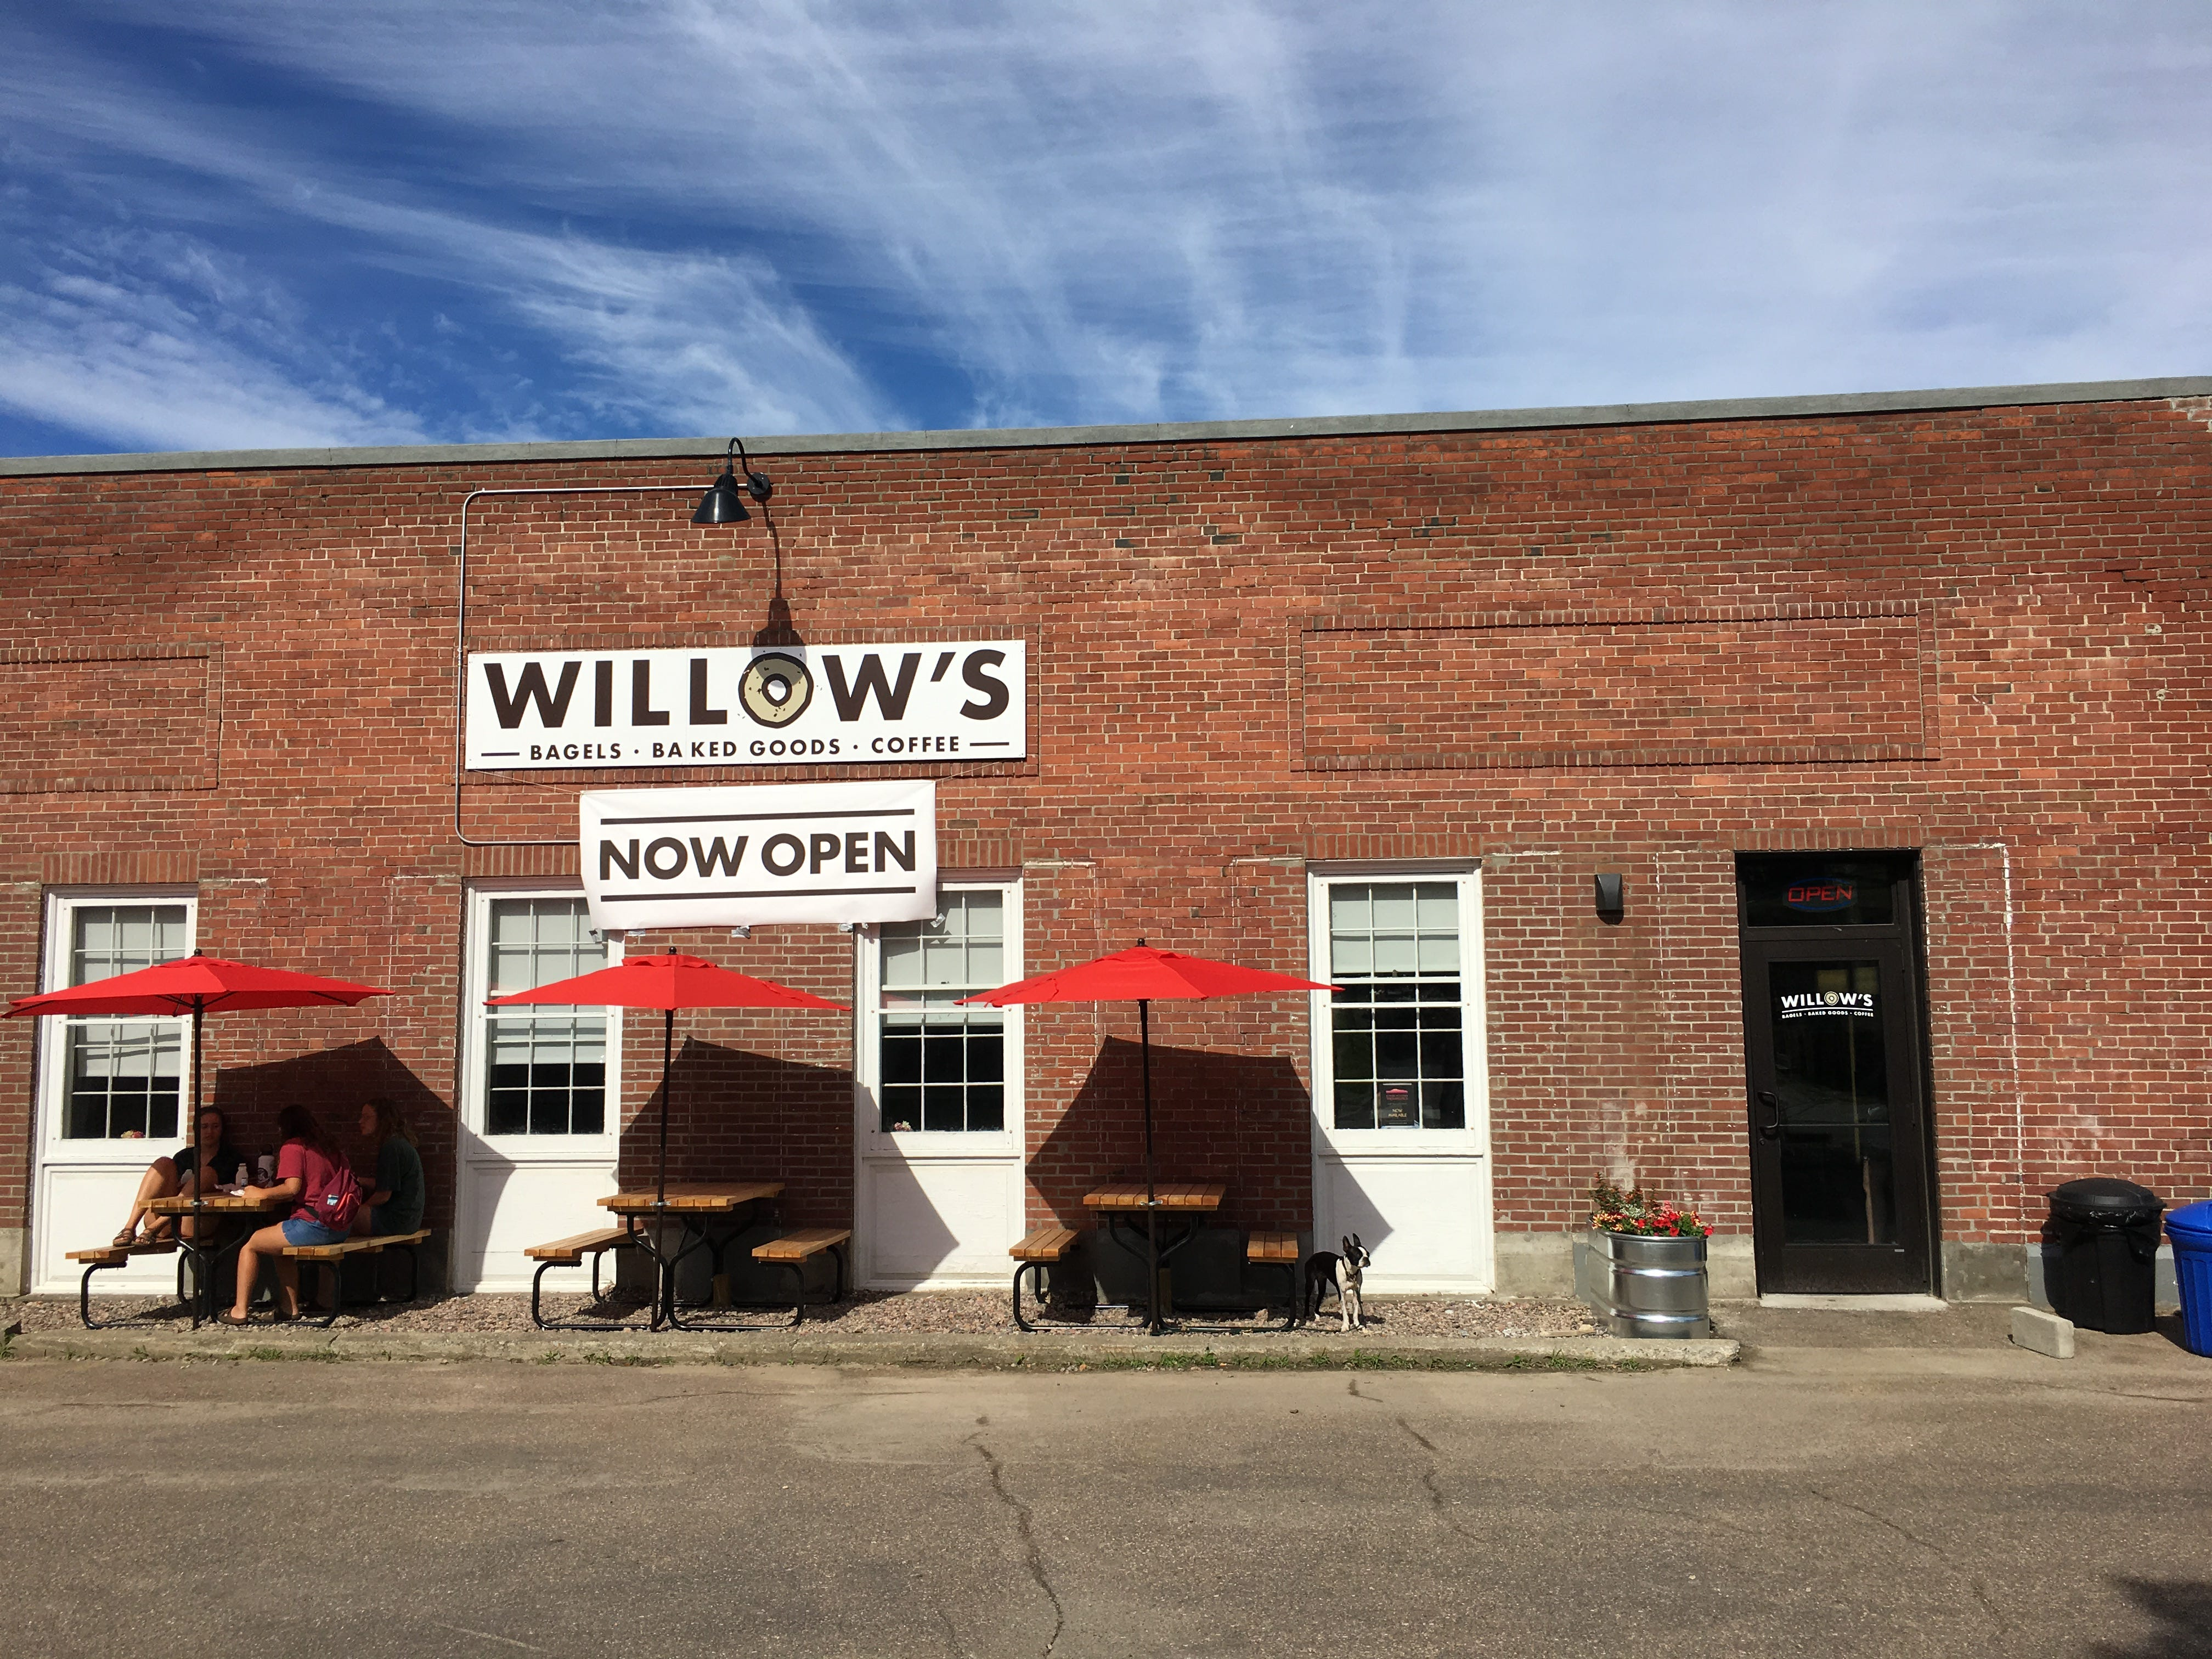 Save the bagel: Newly opened Willow's Bagels blends new and traditional ways of cooking | Burlington Free Press